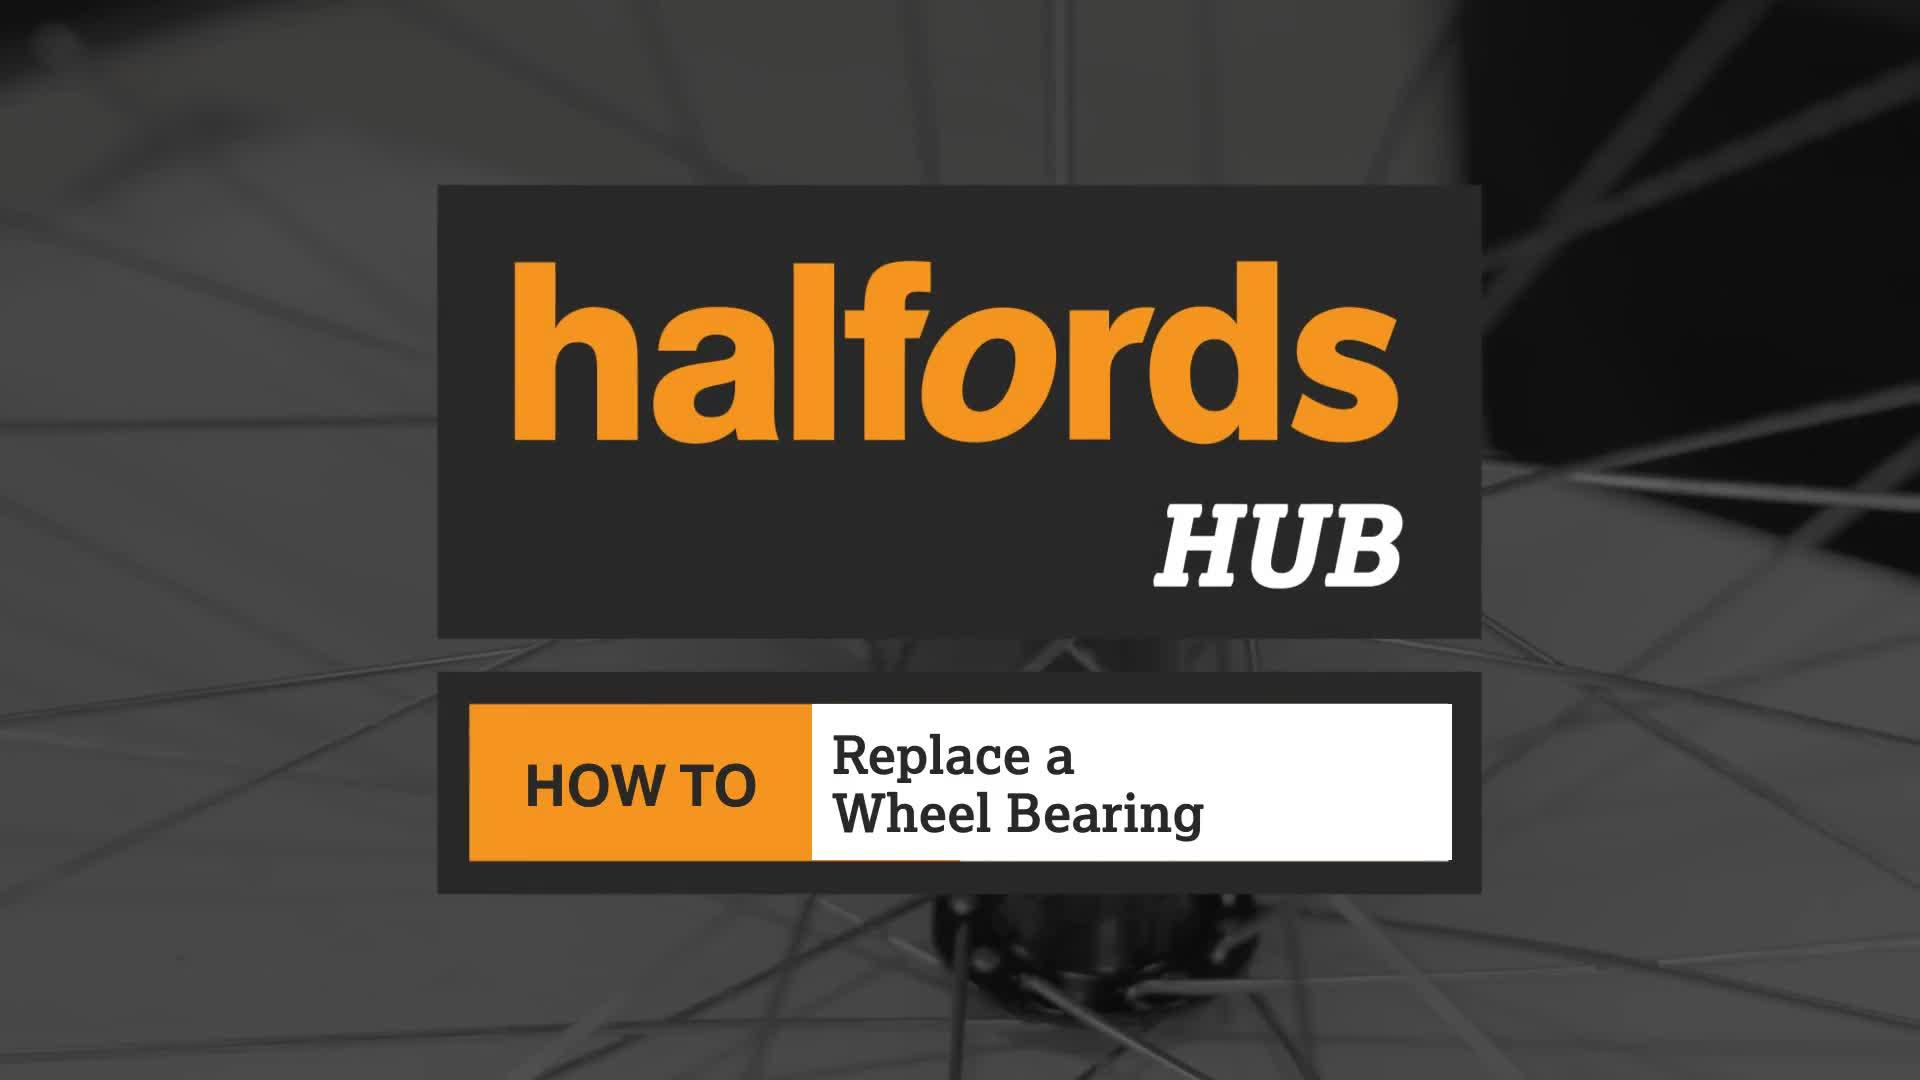 Halfords Advice Centre | Video - How to Replace a Wheel Bearing